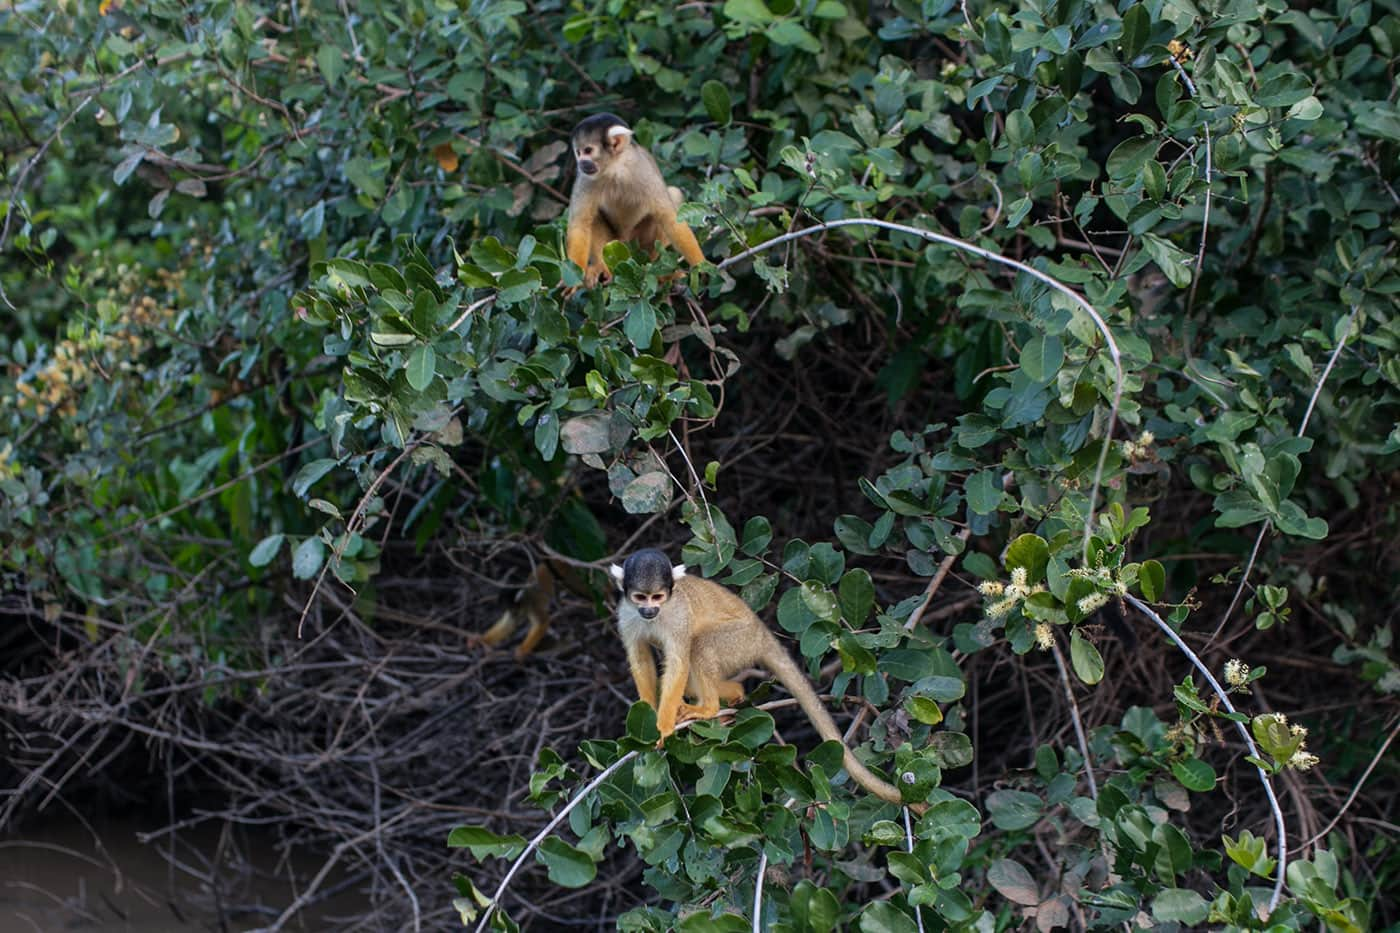 Monkey -The Pampas in the Bolivian Amazon